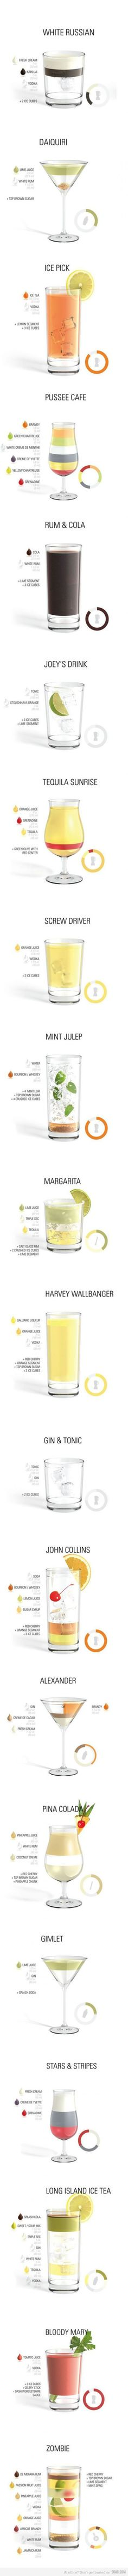 Common Drinks